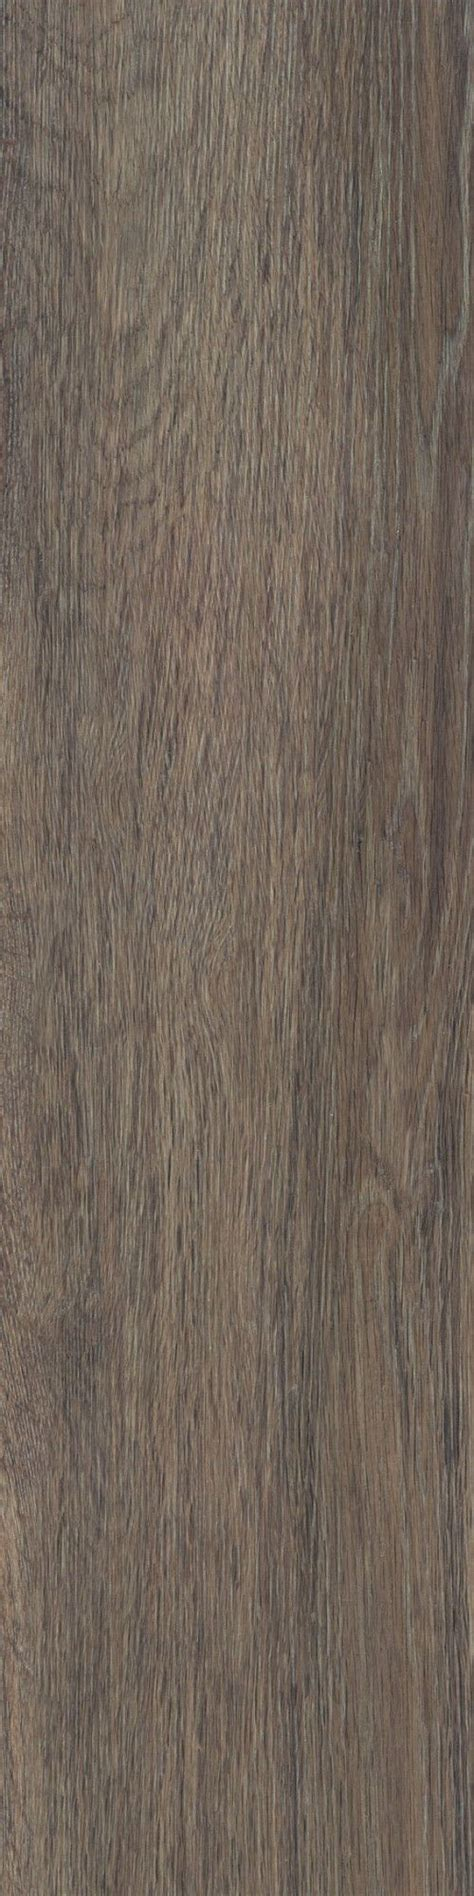 grey wood grain porcelain tile 16 best texture images on pinterest google search light wood texture and highlight